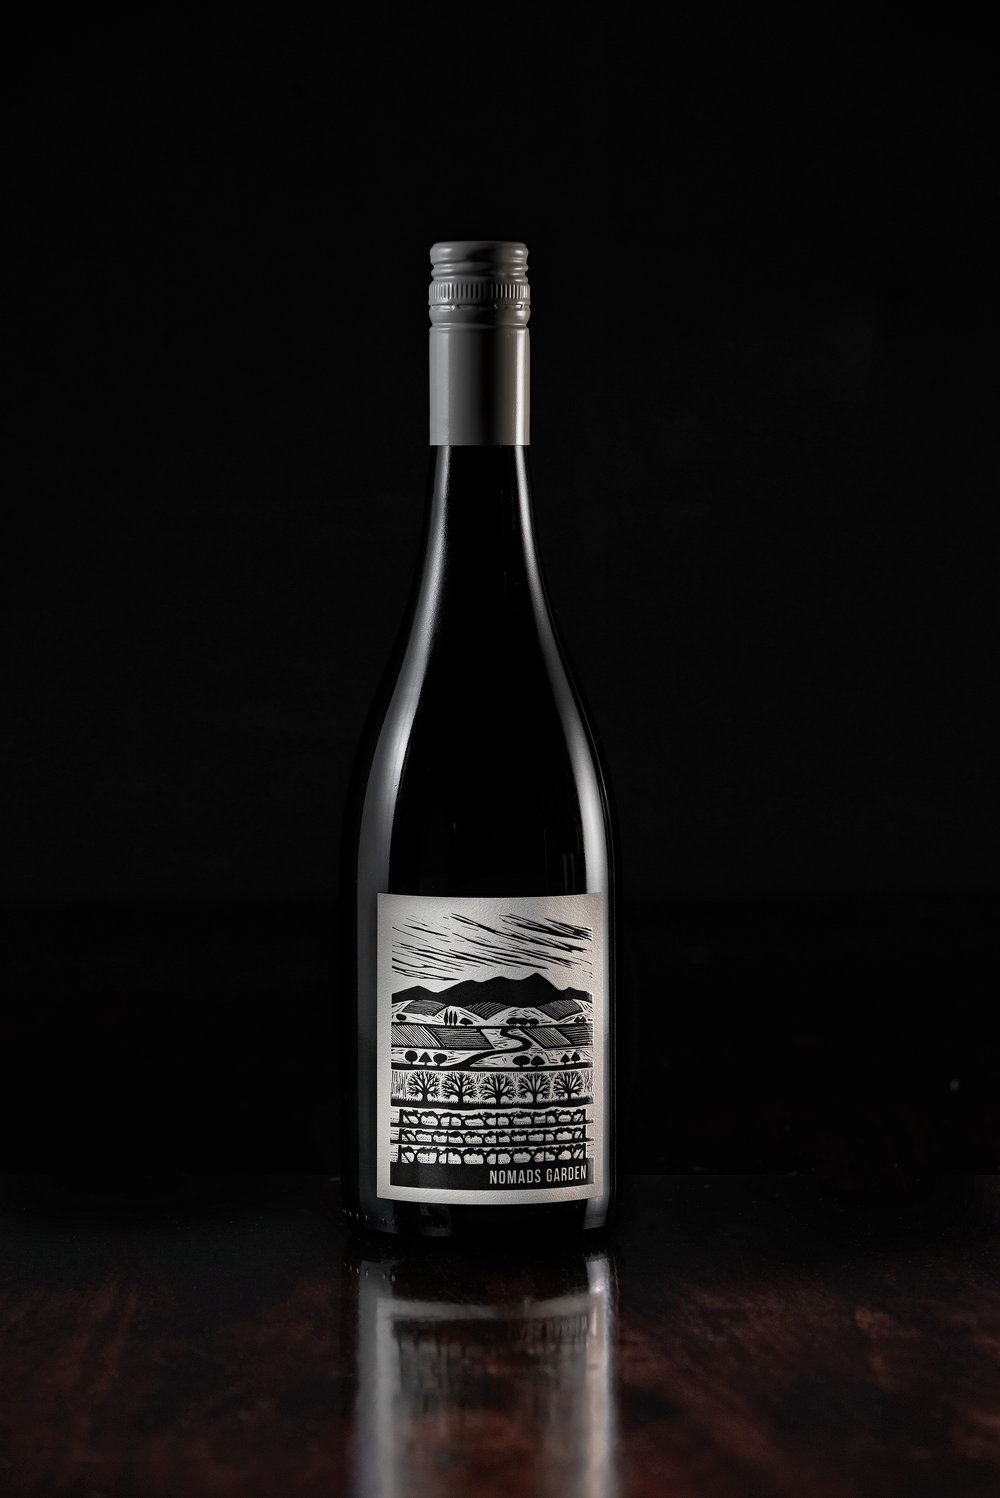 2017 Nero D'Avola - Handmade - Hand Picked - Basket Pressed - Wild Yeast Ferment100% Whole Bunch - No Acid Added - Barrel Aged on LeesVineyard ~ Eldorado Road Home VineyardSelected from our home vineyard at Eldorado in the Woolshed Valley at the foot of the Beechworth plateau, just outside the official Beechworth GI. Over millions of years the Reedy Creek which meanders through our farm has washed down a unique narrow seam of decomposed red granite soil from its origin up on the Beechworth plateau. This special dirt and the continental Mediterranean climate was the inspiration for planting this Sicilian native. Given this is our own vineyard hand tended by us we saw the opportunity to experiment with some surplus fruit in 2017 that looked just perfect for early picking to create a wine inspired by the easy drinking Gamays of Beaujolais.Grapes were handpicked at 12 baume and a pH of 3.5 then transferred as whole bunches directly to stainless steel fermentors, covered and protected with CO2. Fermentation didn't commence for nearly a week and then was allowed to rise to a temperature of 30 degrees Celsius where it was held. After 2 weeks the we begun foot treating the ferments to compact the bunches, then after three weeks all ferments were gently basket pressed to 4-6 year old 500L French oak puncheons then allowed to rest on full lees to build texture for 12 months. The wines are then lightly filtered and bottled, before been given at least 3 months post bottling to settle. This wine also looks fantastic as a lightly chilled red in the warmer months.